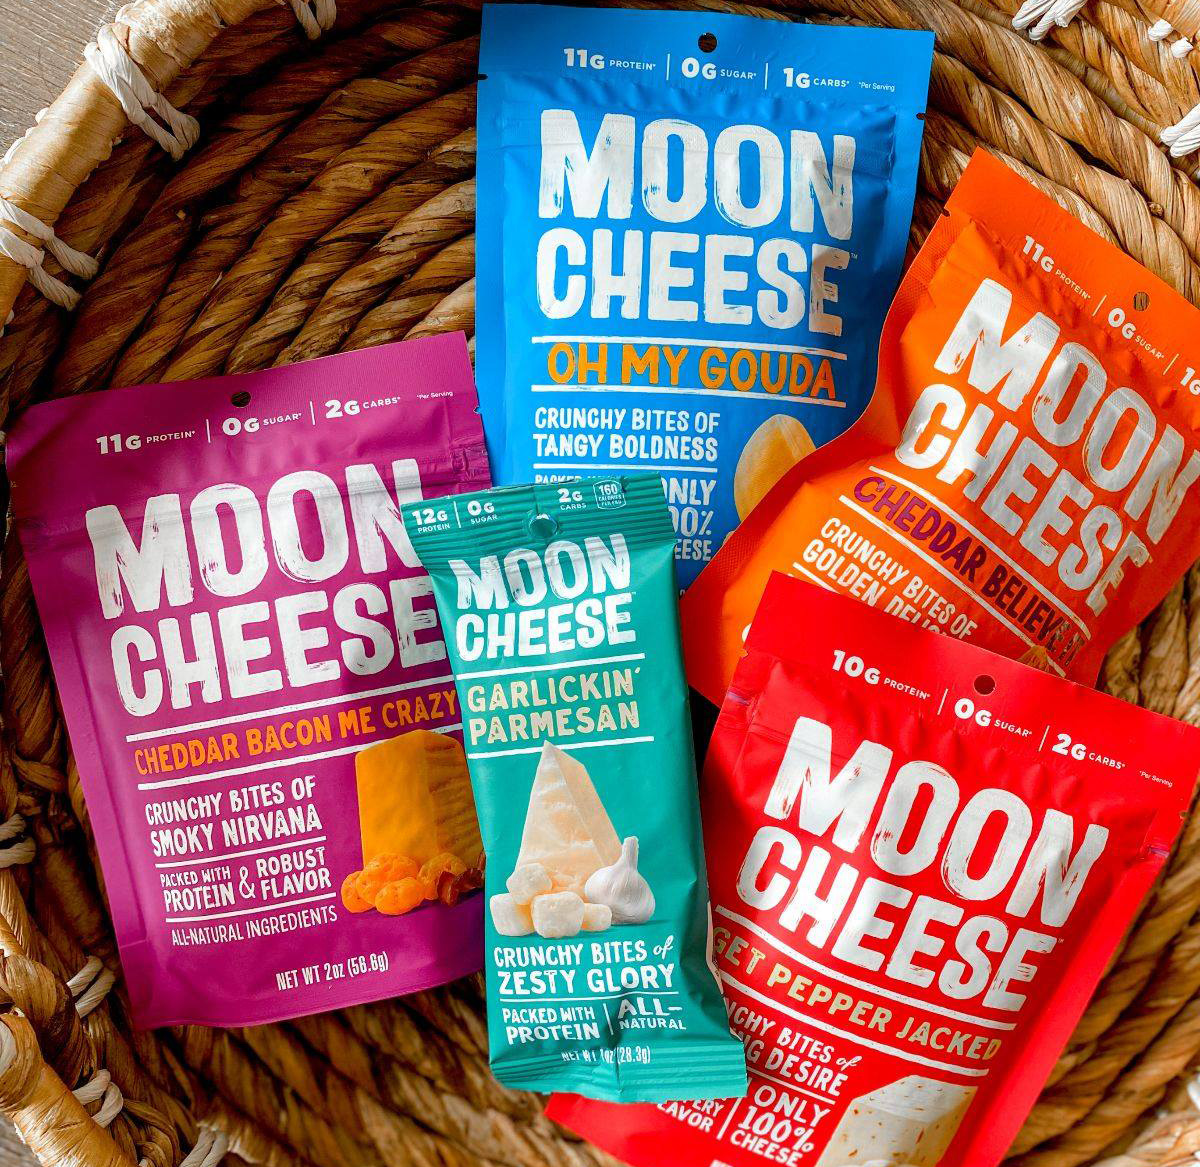 basket filled with bags of moon cheese